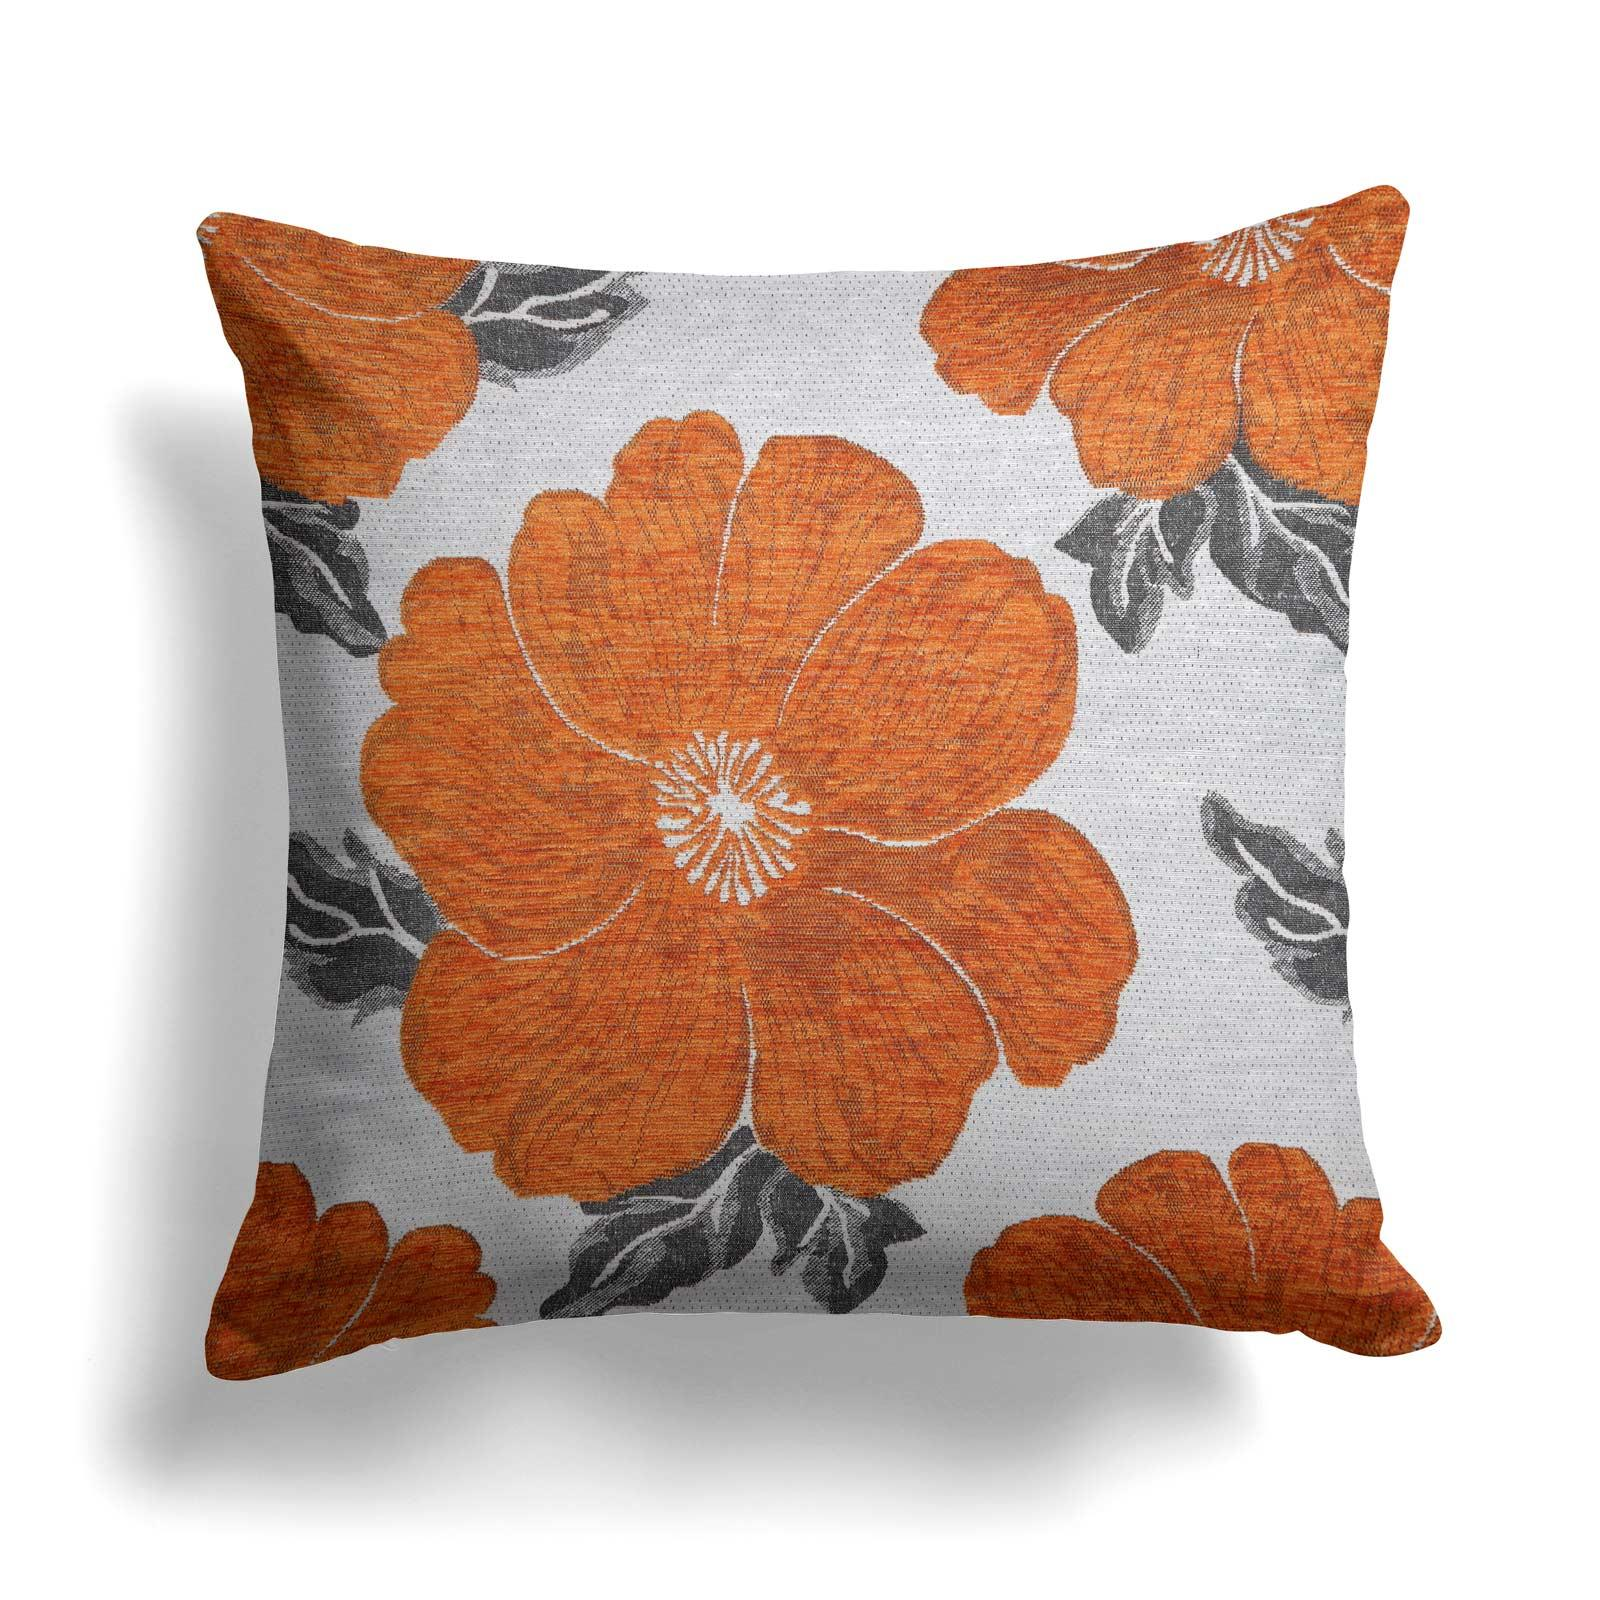 "Kira Poppy Orange Cushion Covers 22"" x 22"" -  - Ideal Textiles"